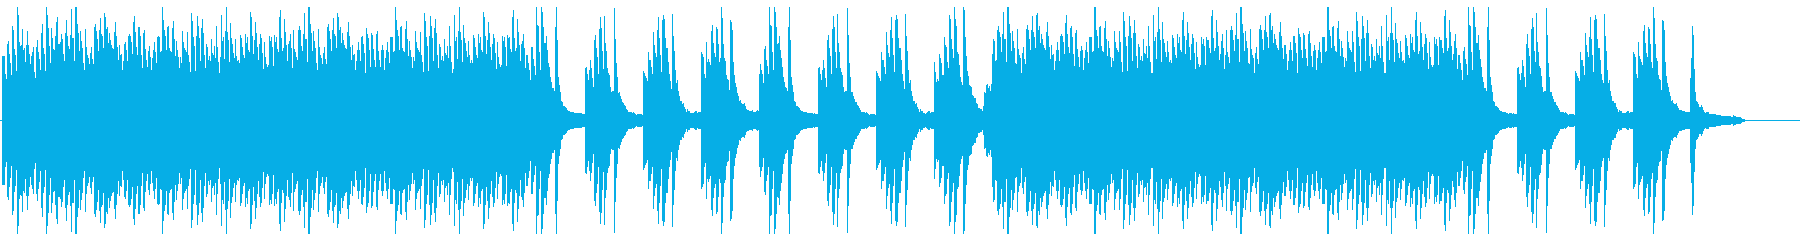 Easy listening of piano and synth's reproduced waveform